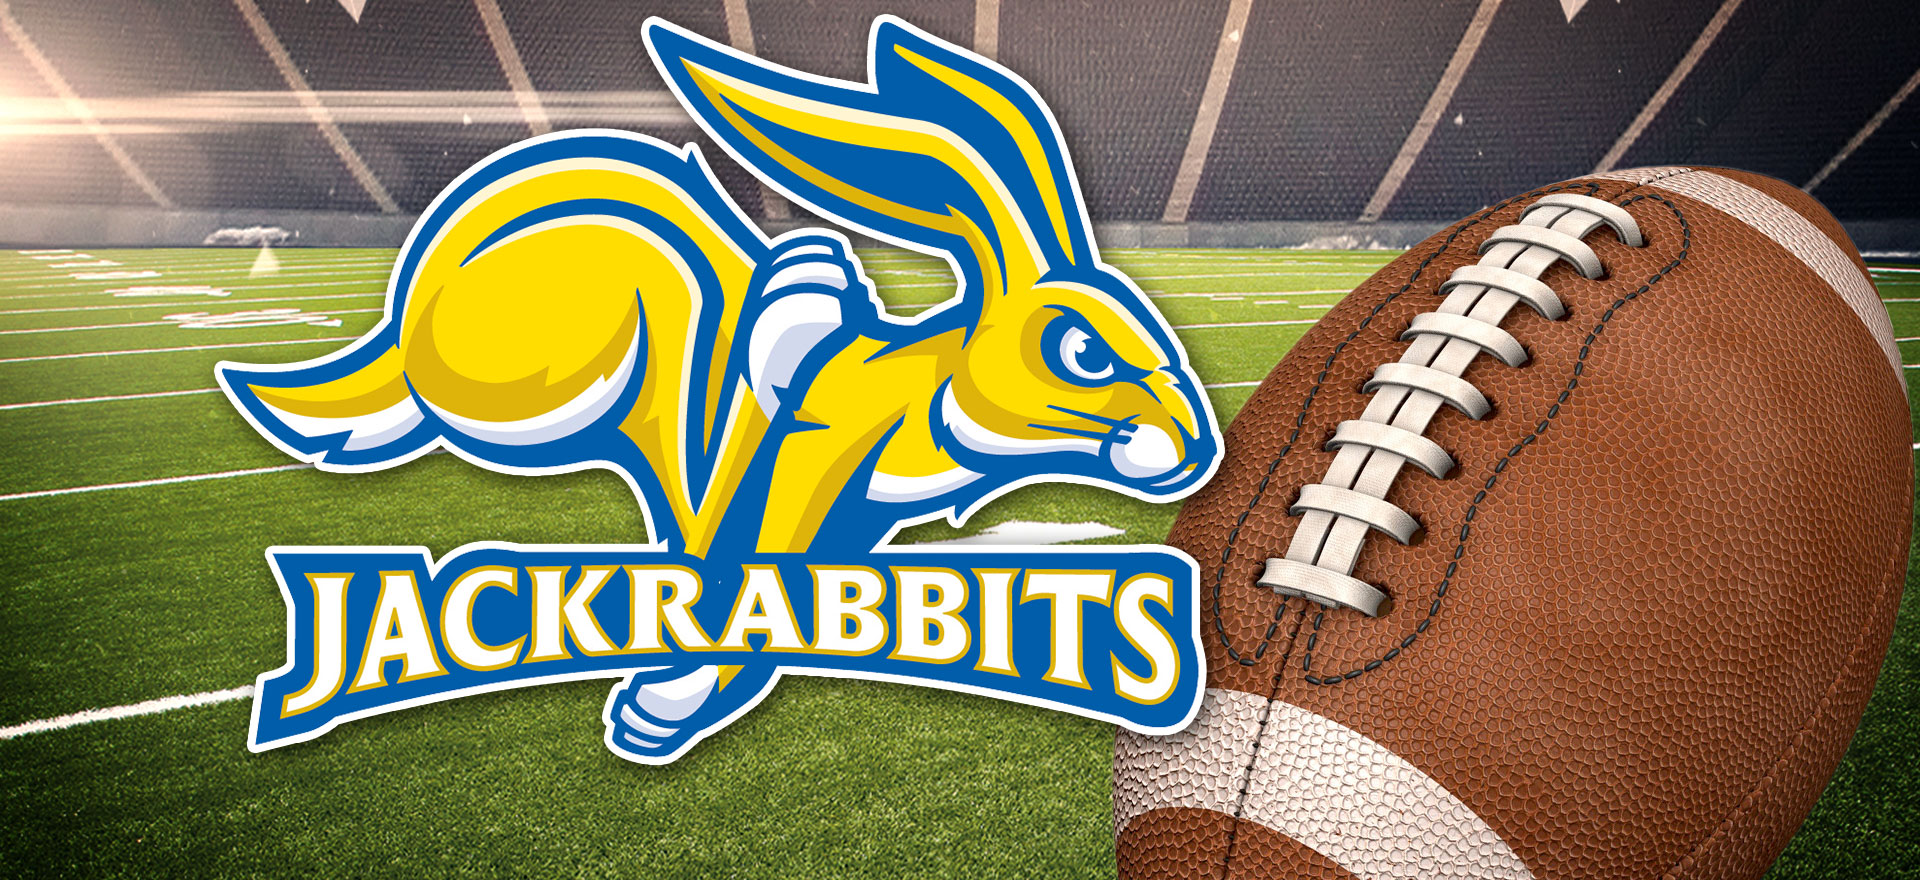 SDSU Jackrabbits South Dakota State University Jacks Football